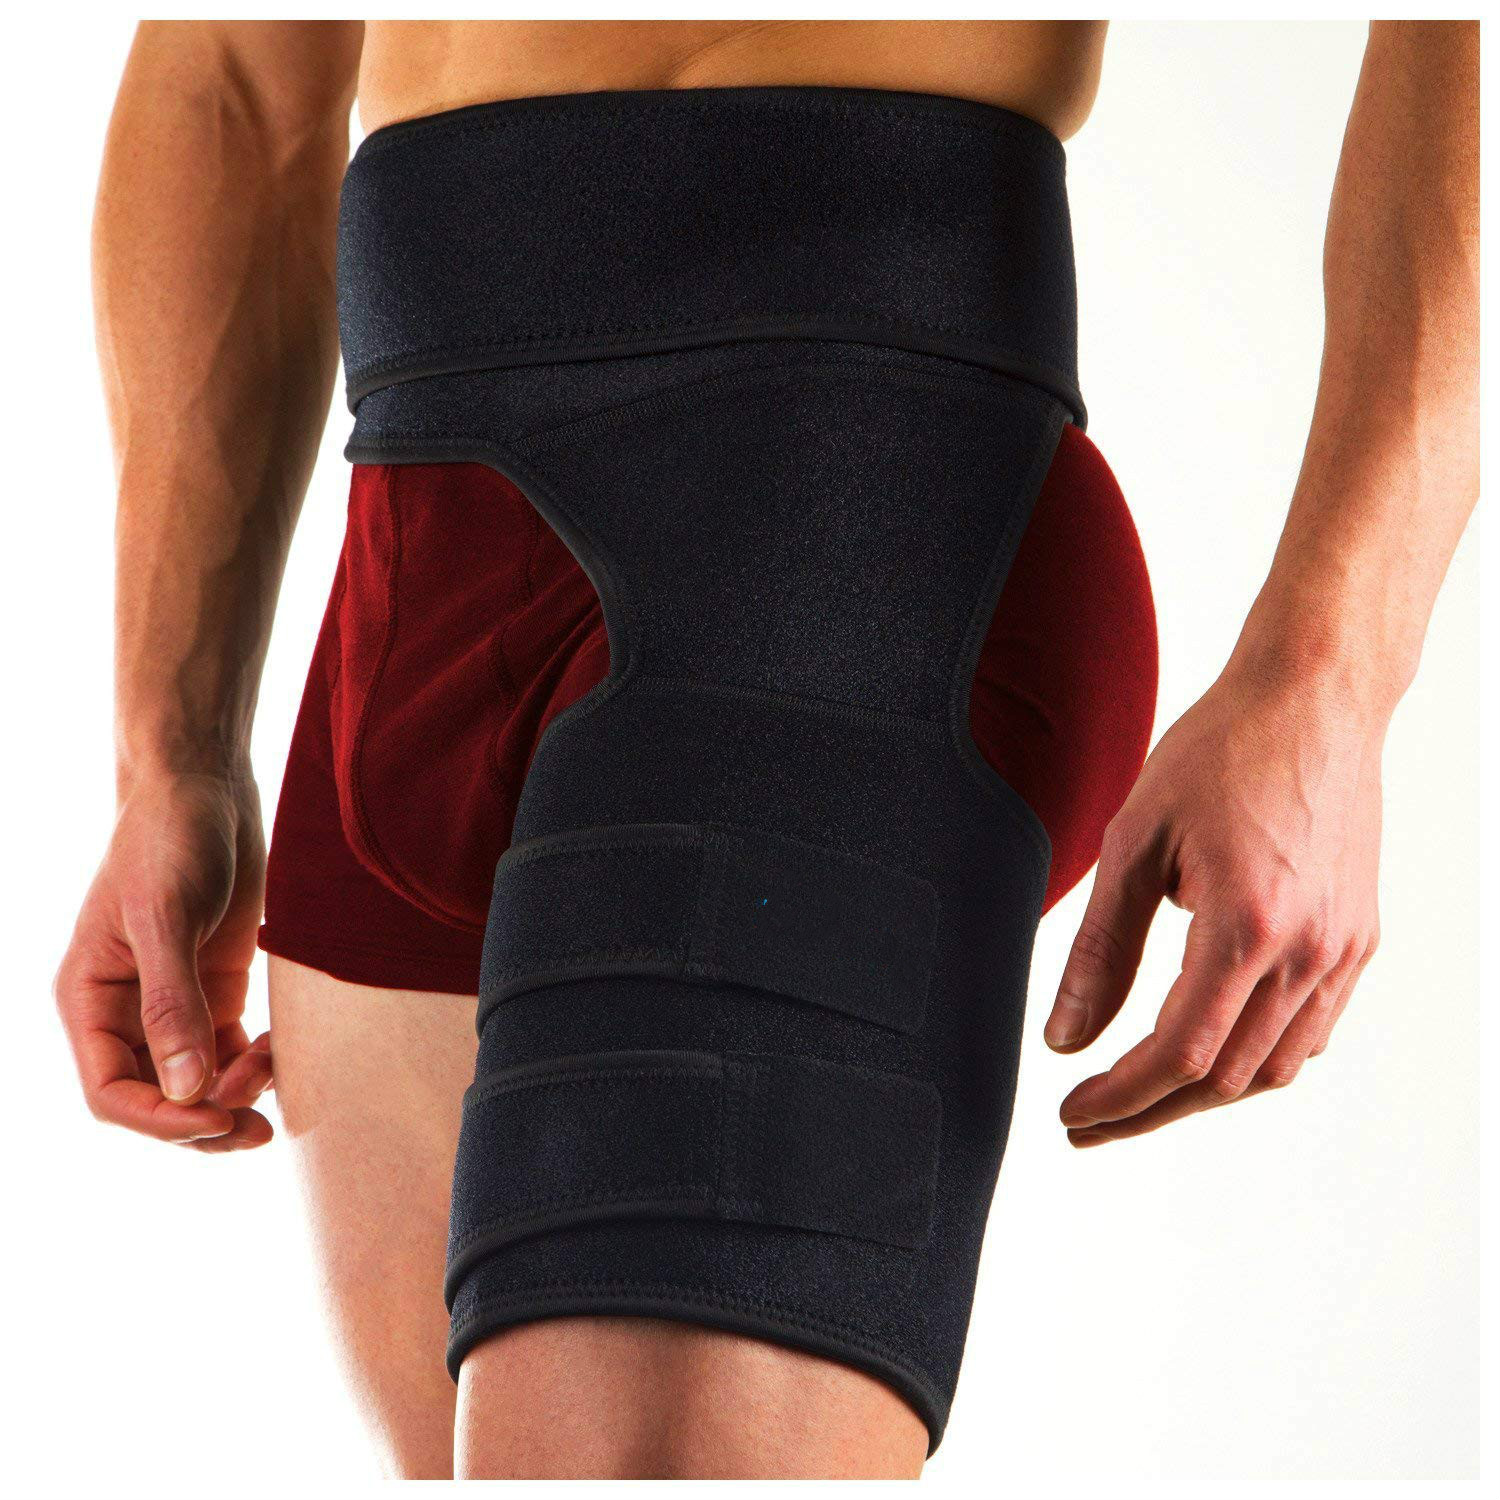 Hip Brace Adjustable Groin Support Compression Recovery Thigh Wrap Waist Support